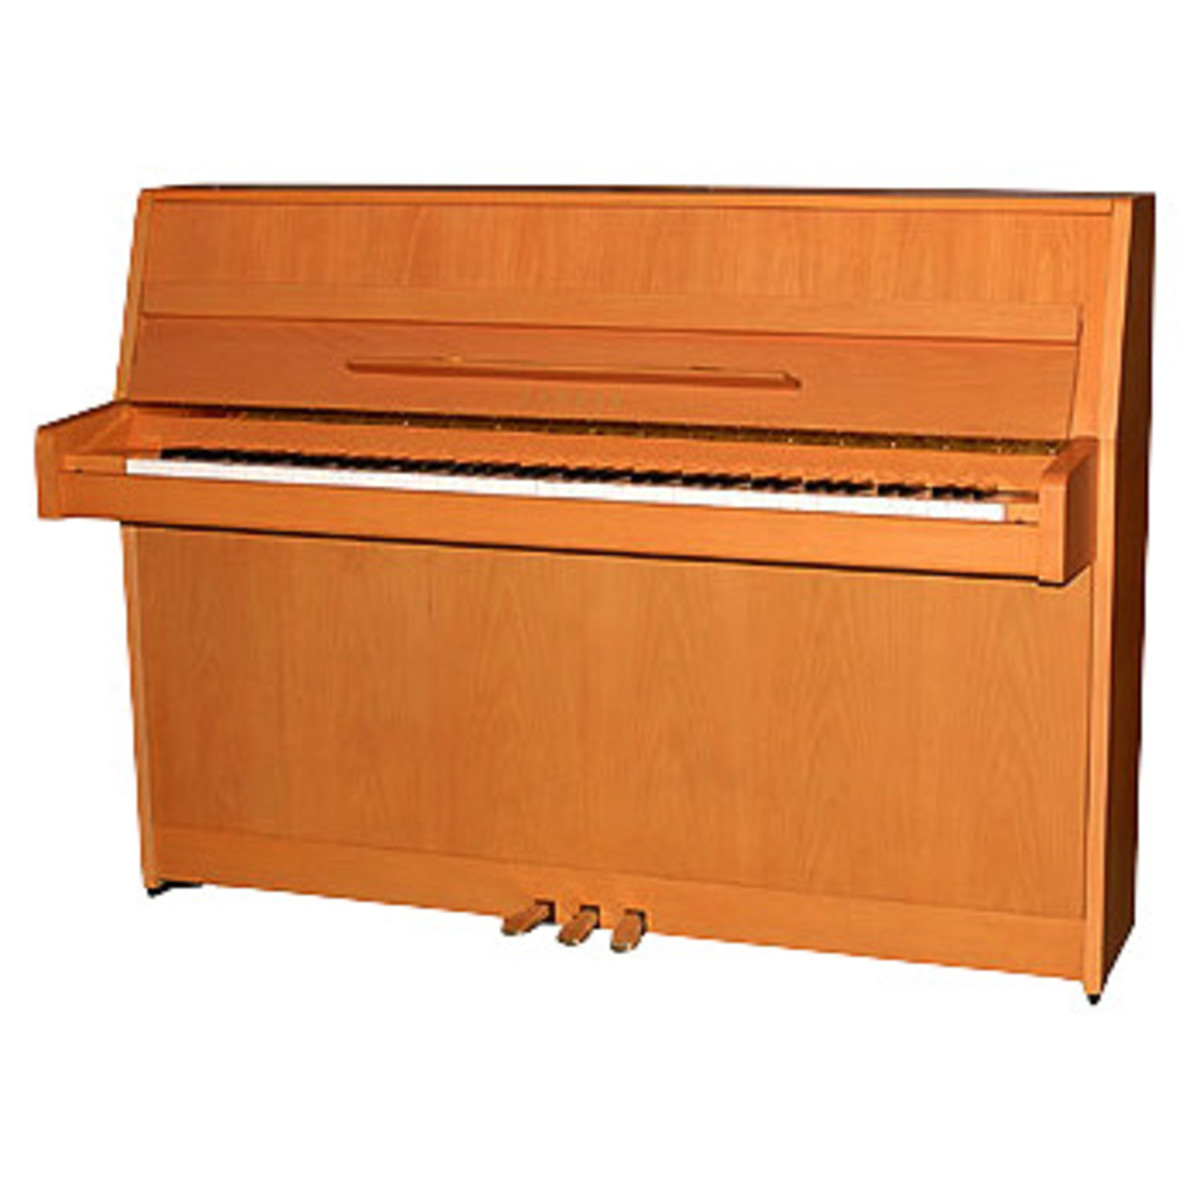 Yamaha b1 upright acoustic piano natural cherry satin at for Yamaha b1 piano price